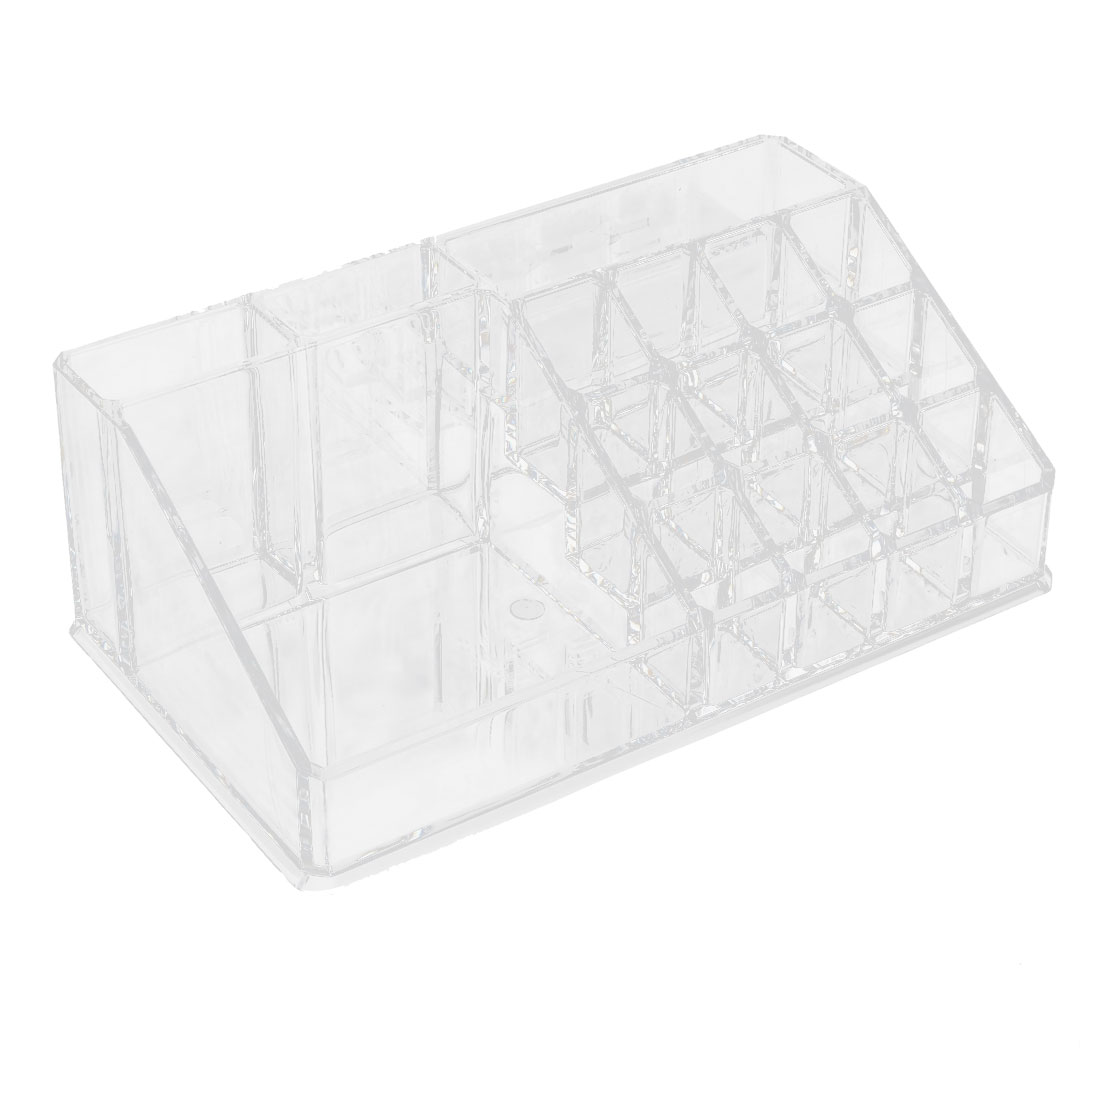 Acrylic 18-slot Trapezoid Makeup Cosmetic Organizer Display Stand Box Clear